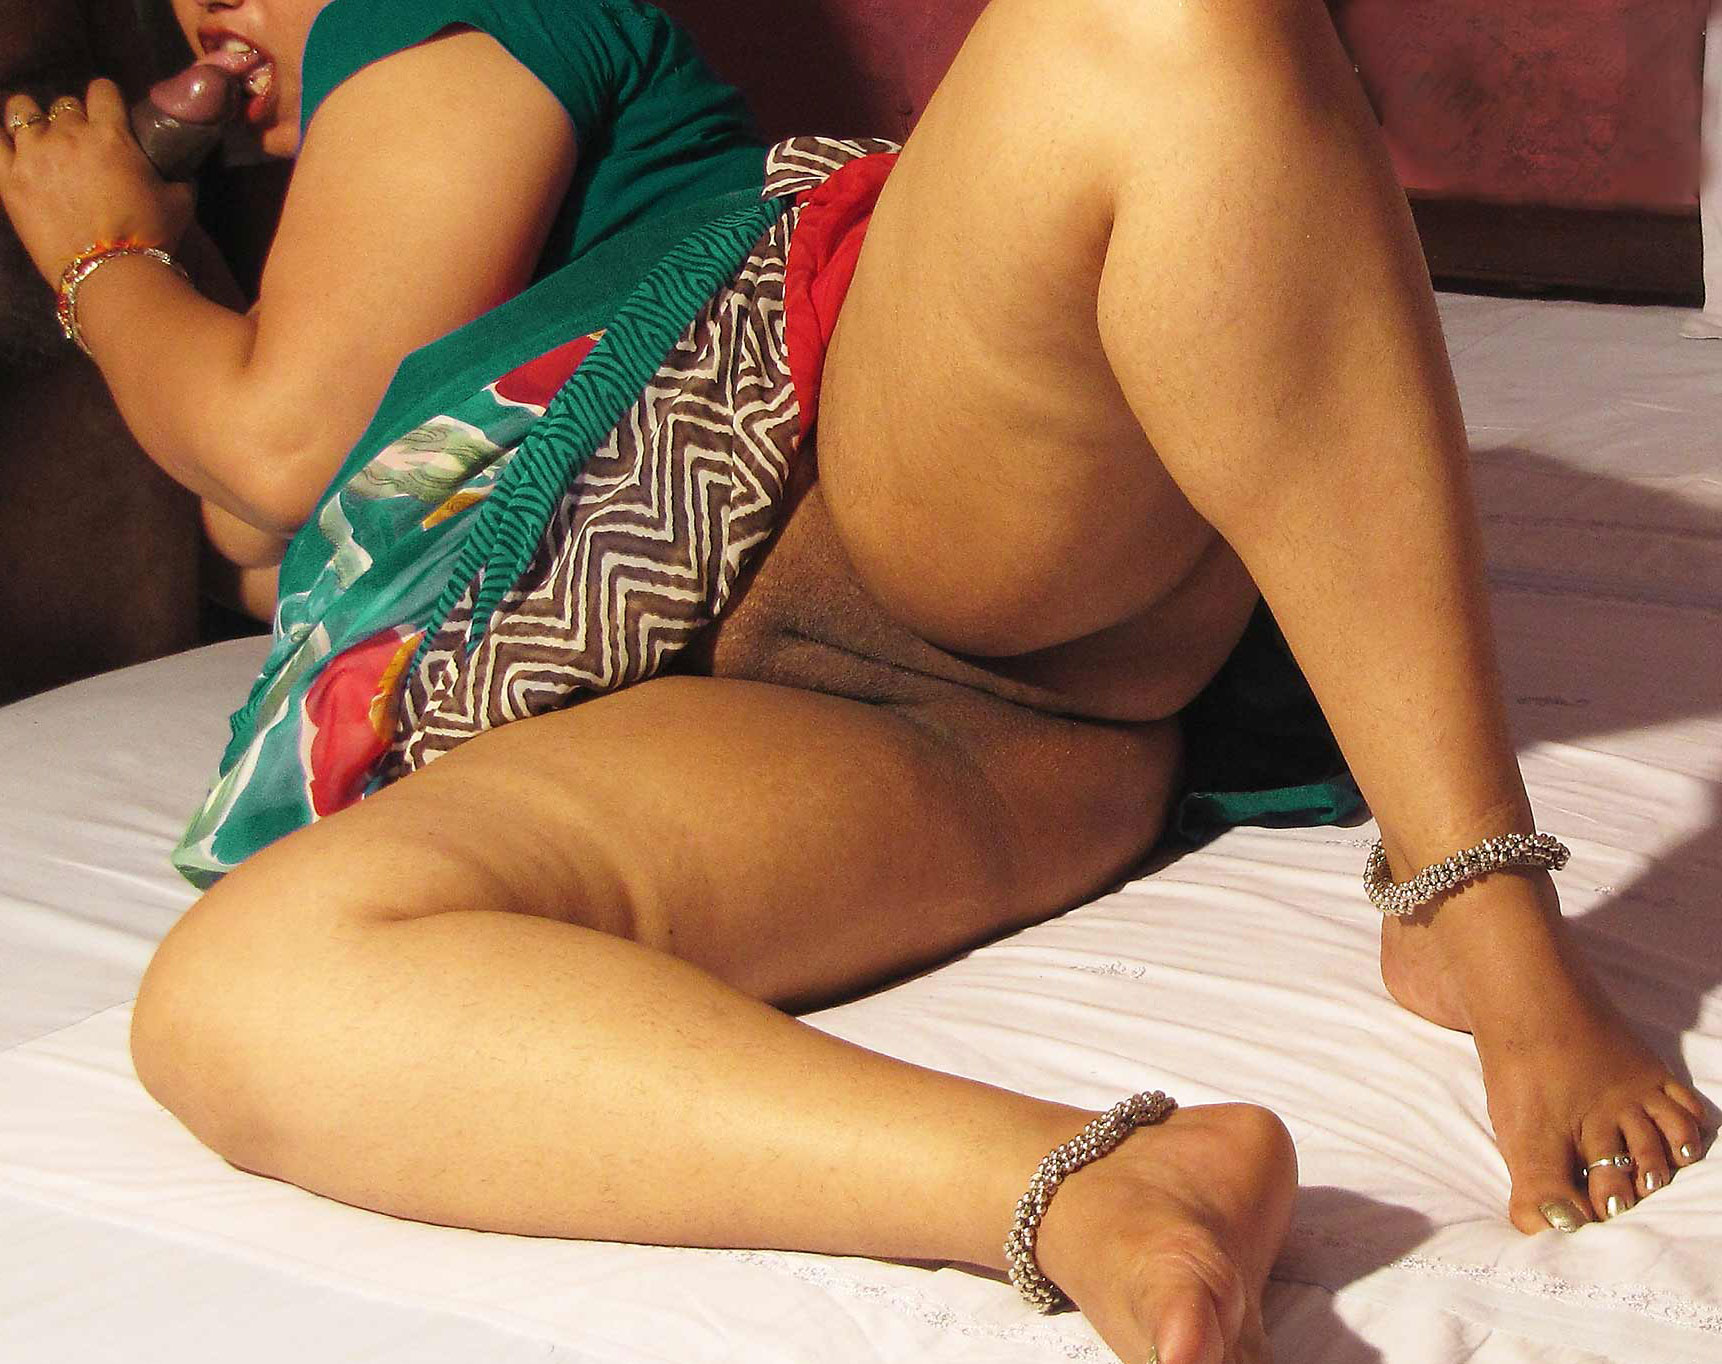 Hot aunty pussy photo